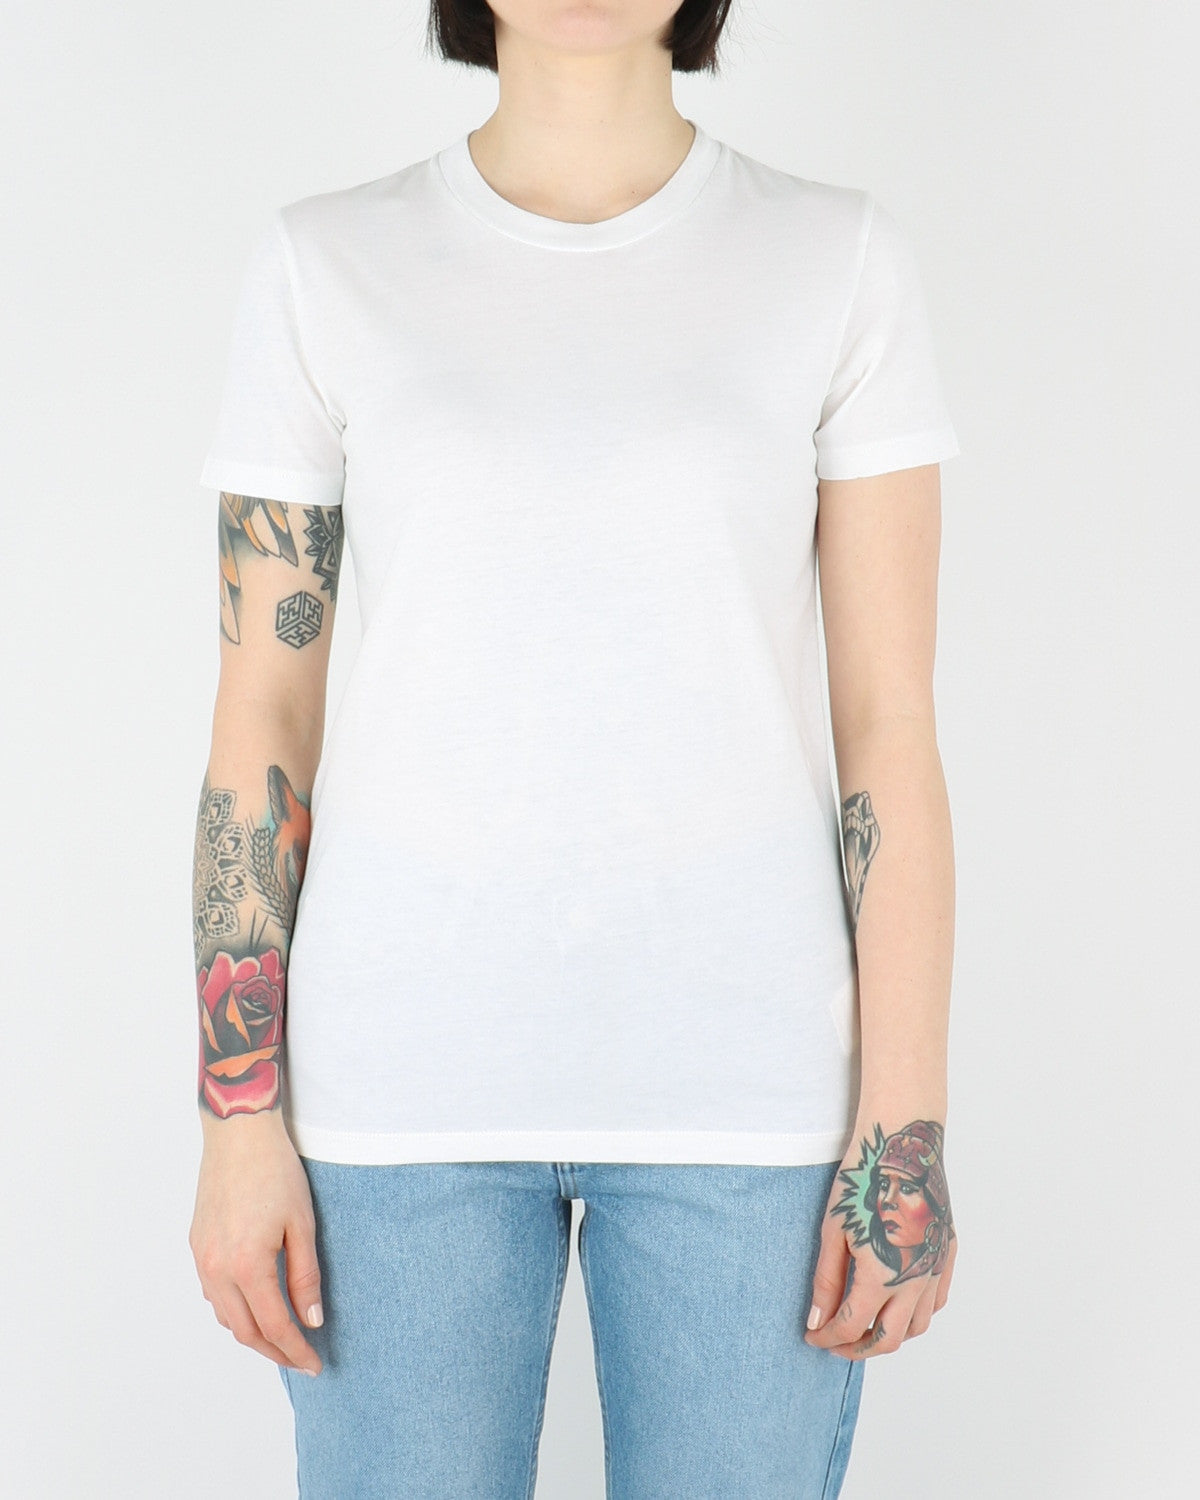 wood wood_eden t-shirt_white_view_1_2